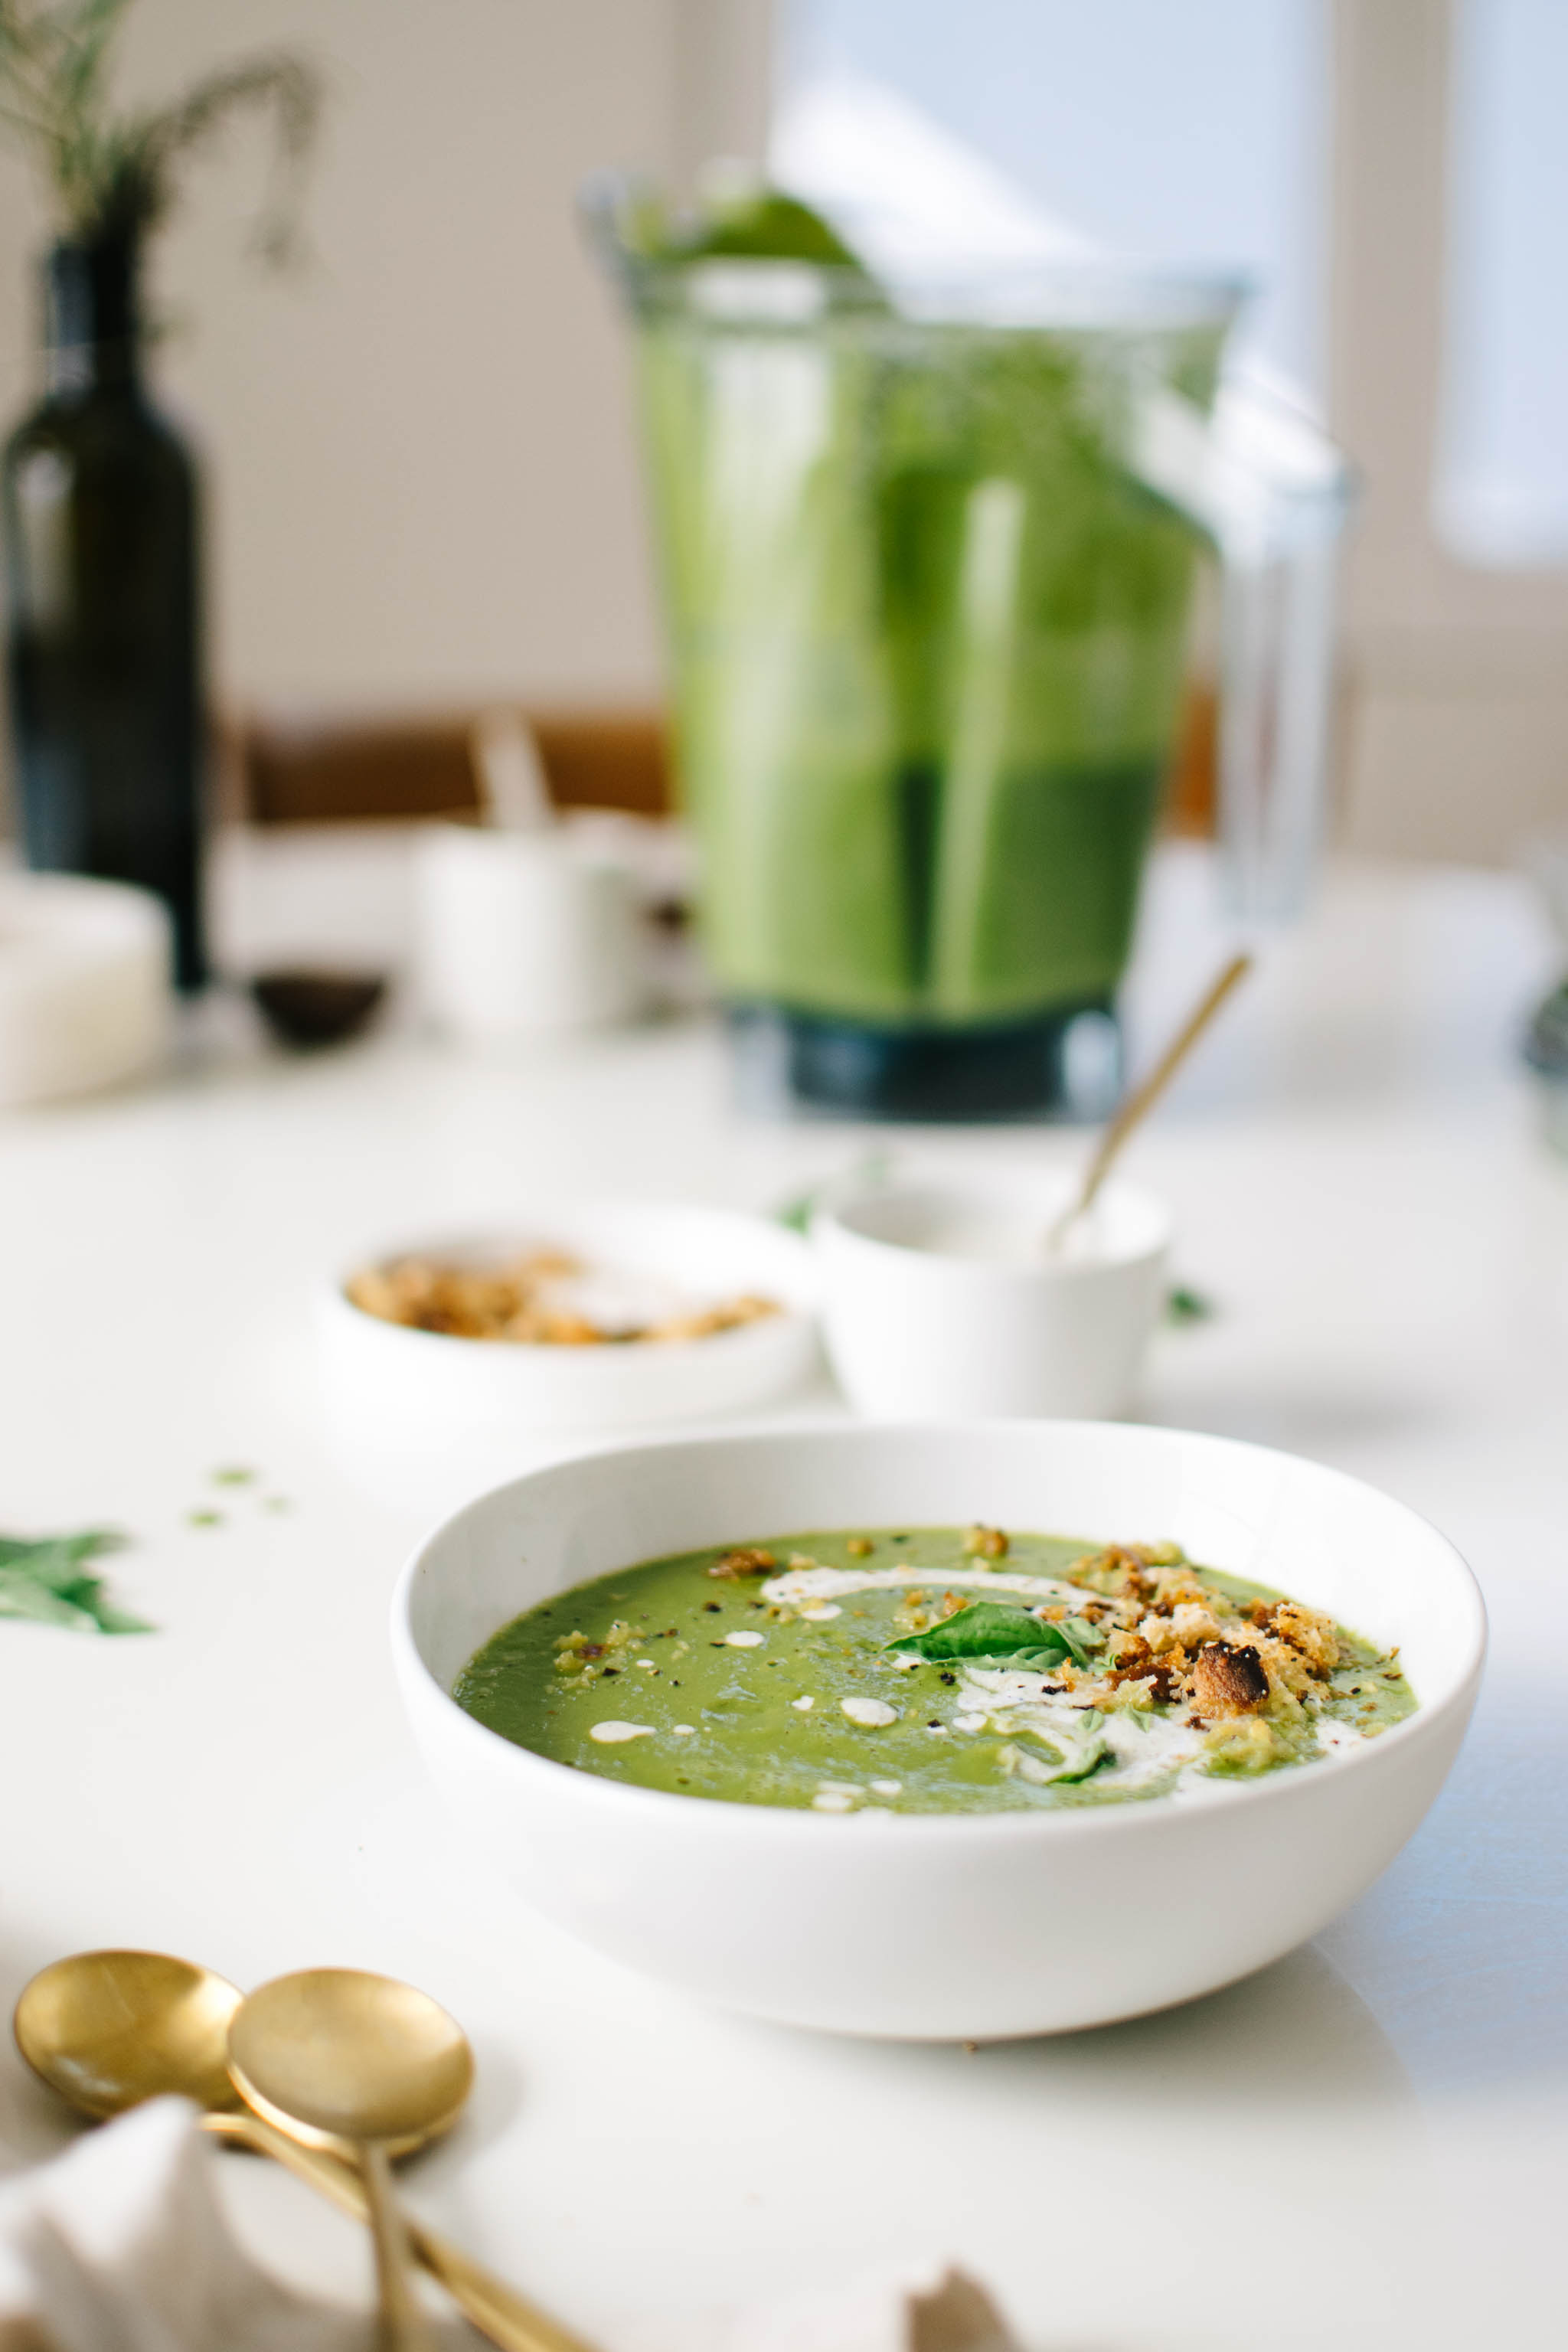 Win Vitamix Ascent Blender Zucchini Basil Soup